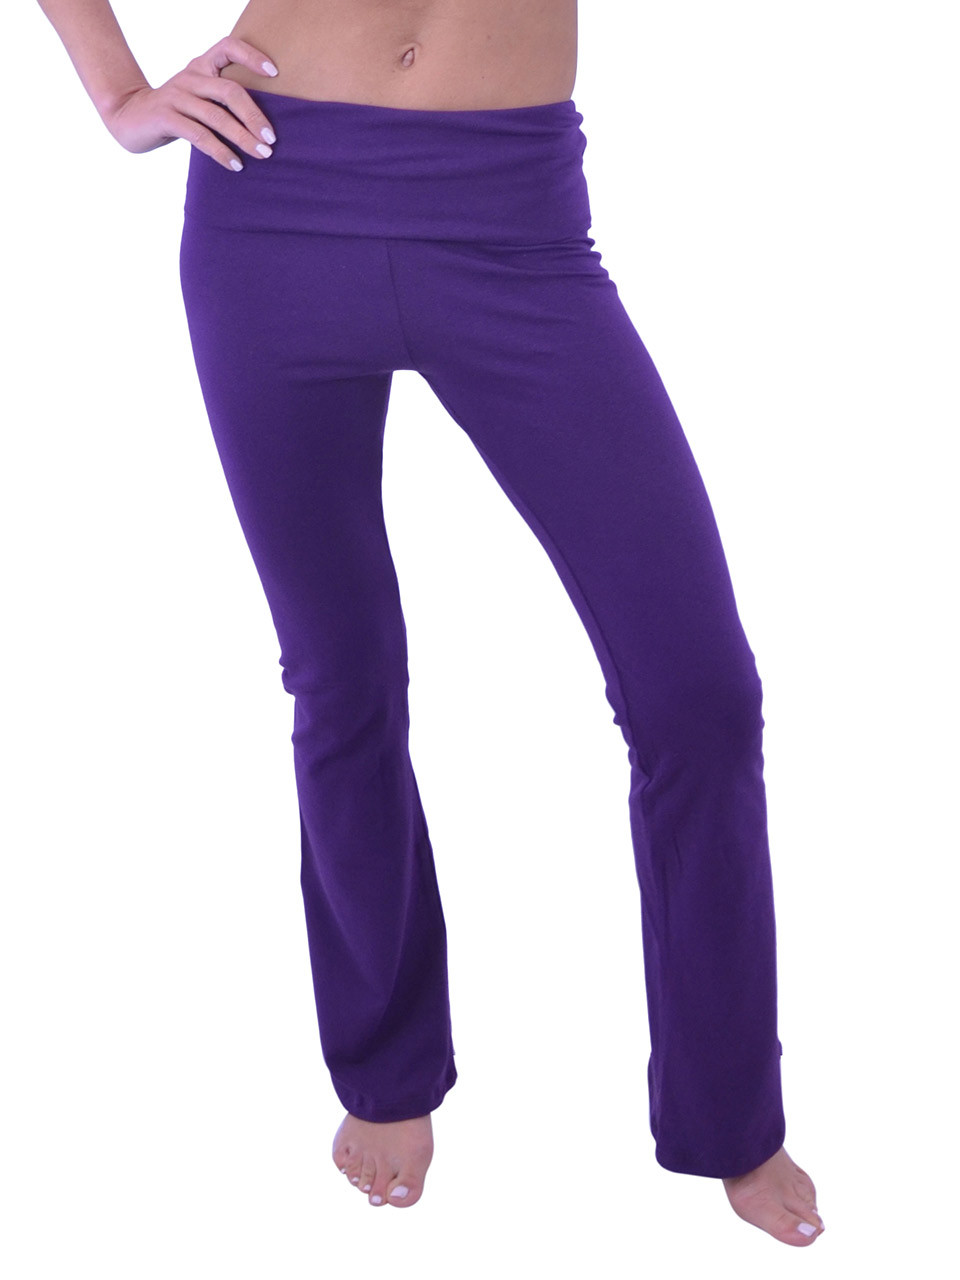 3a54c22408e Vivian s Fashions Yoga Pants - Full Length (Junior and Junior Plus Sizes)